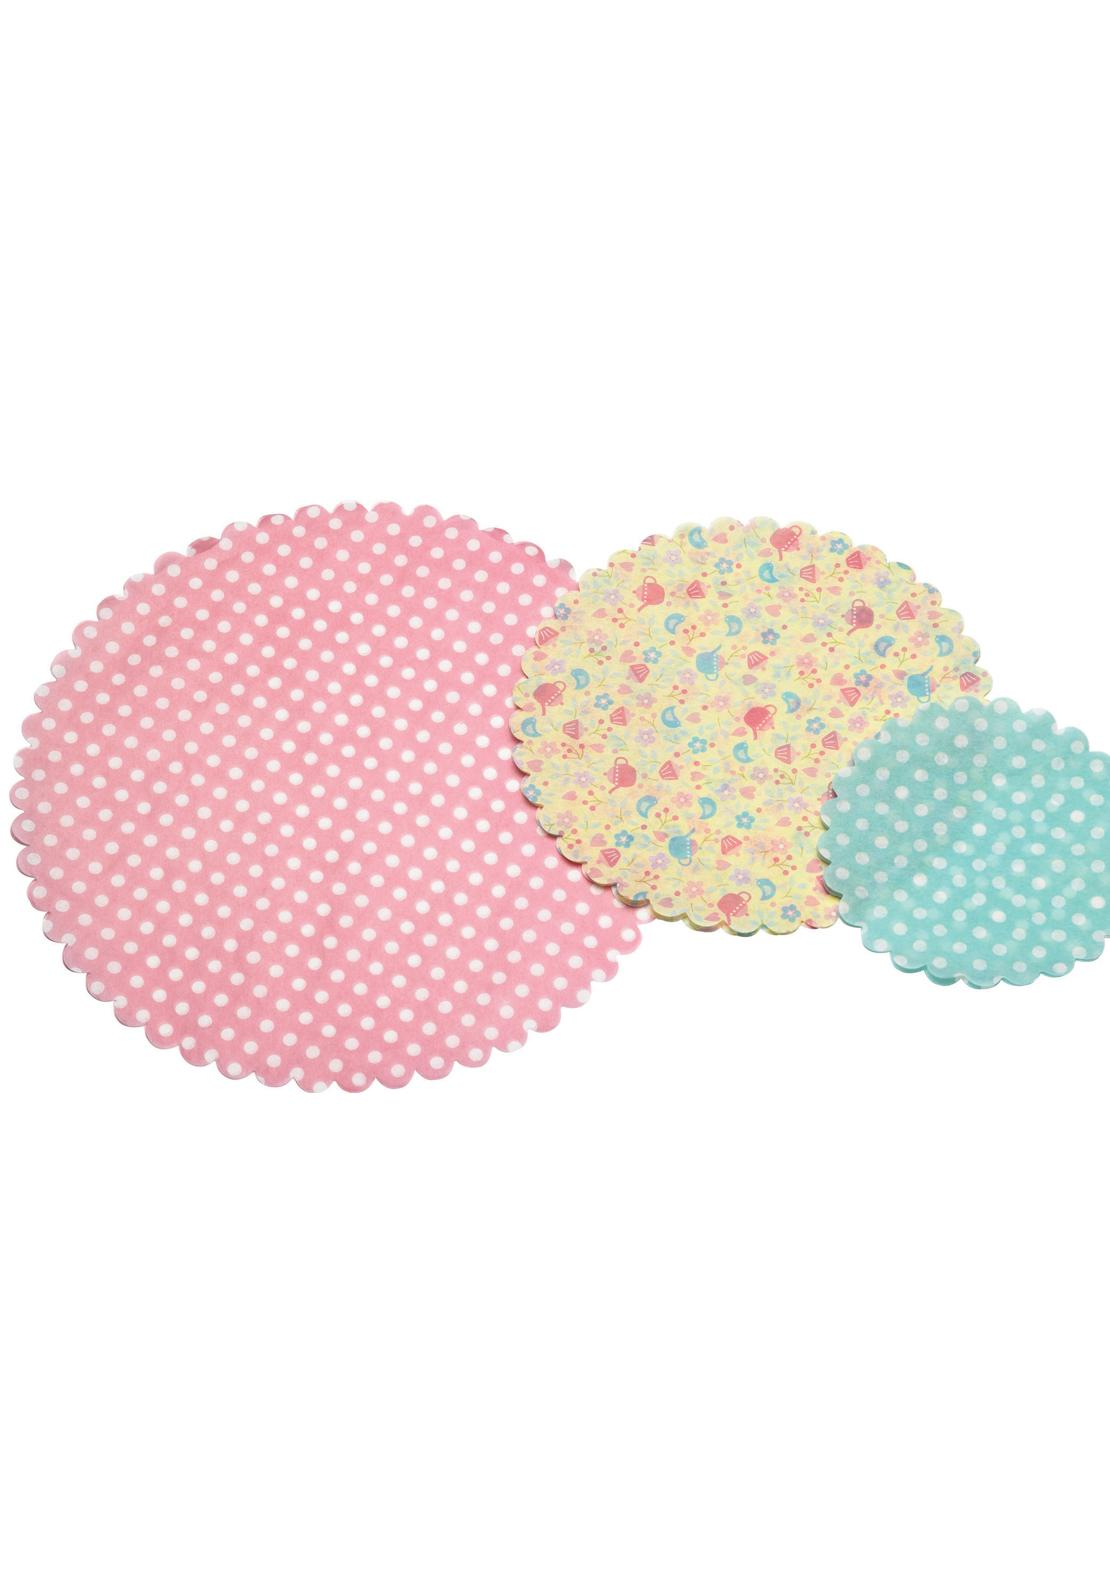 Sweetly Does It Patterned Paper Doilies (Pack of 30)